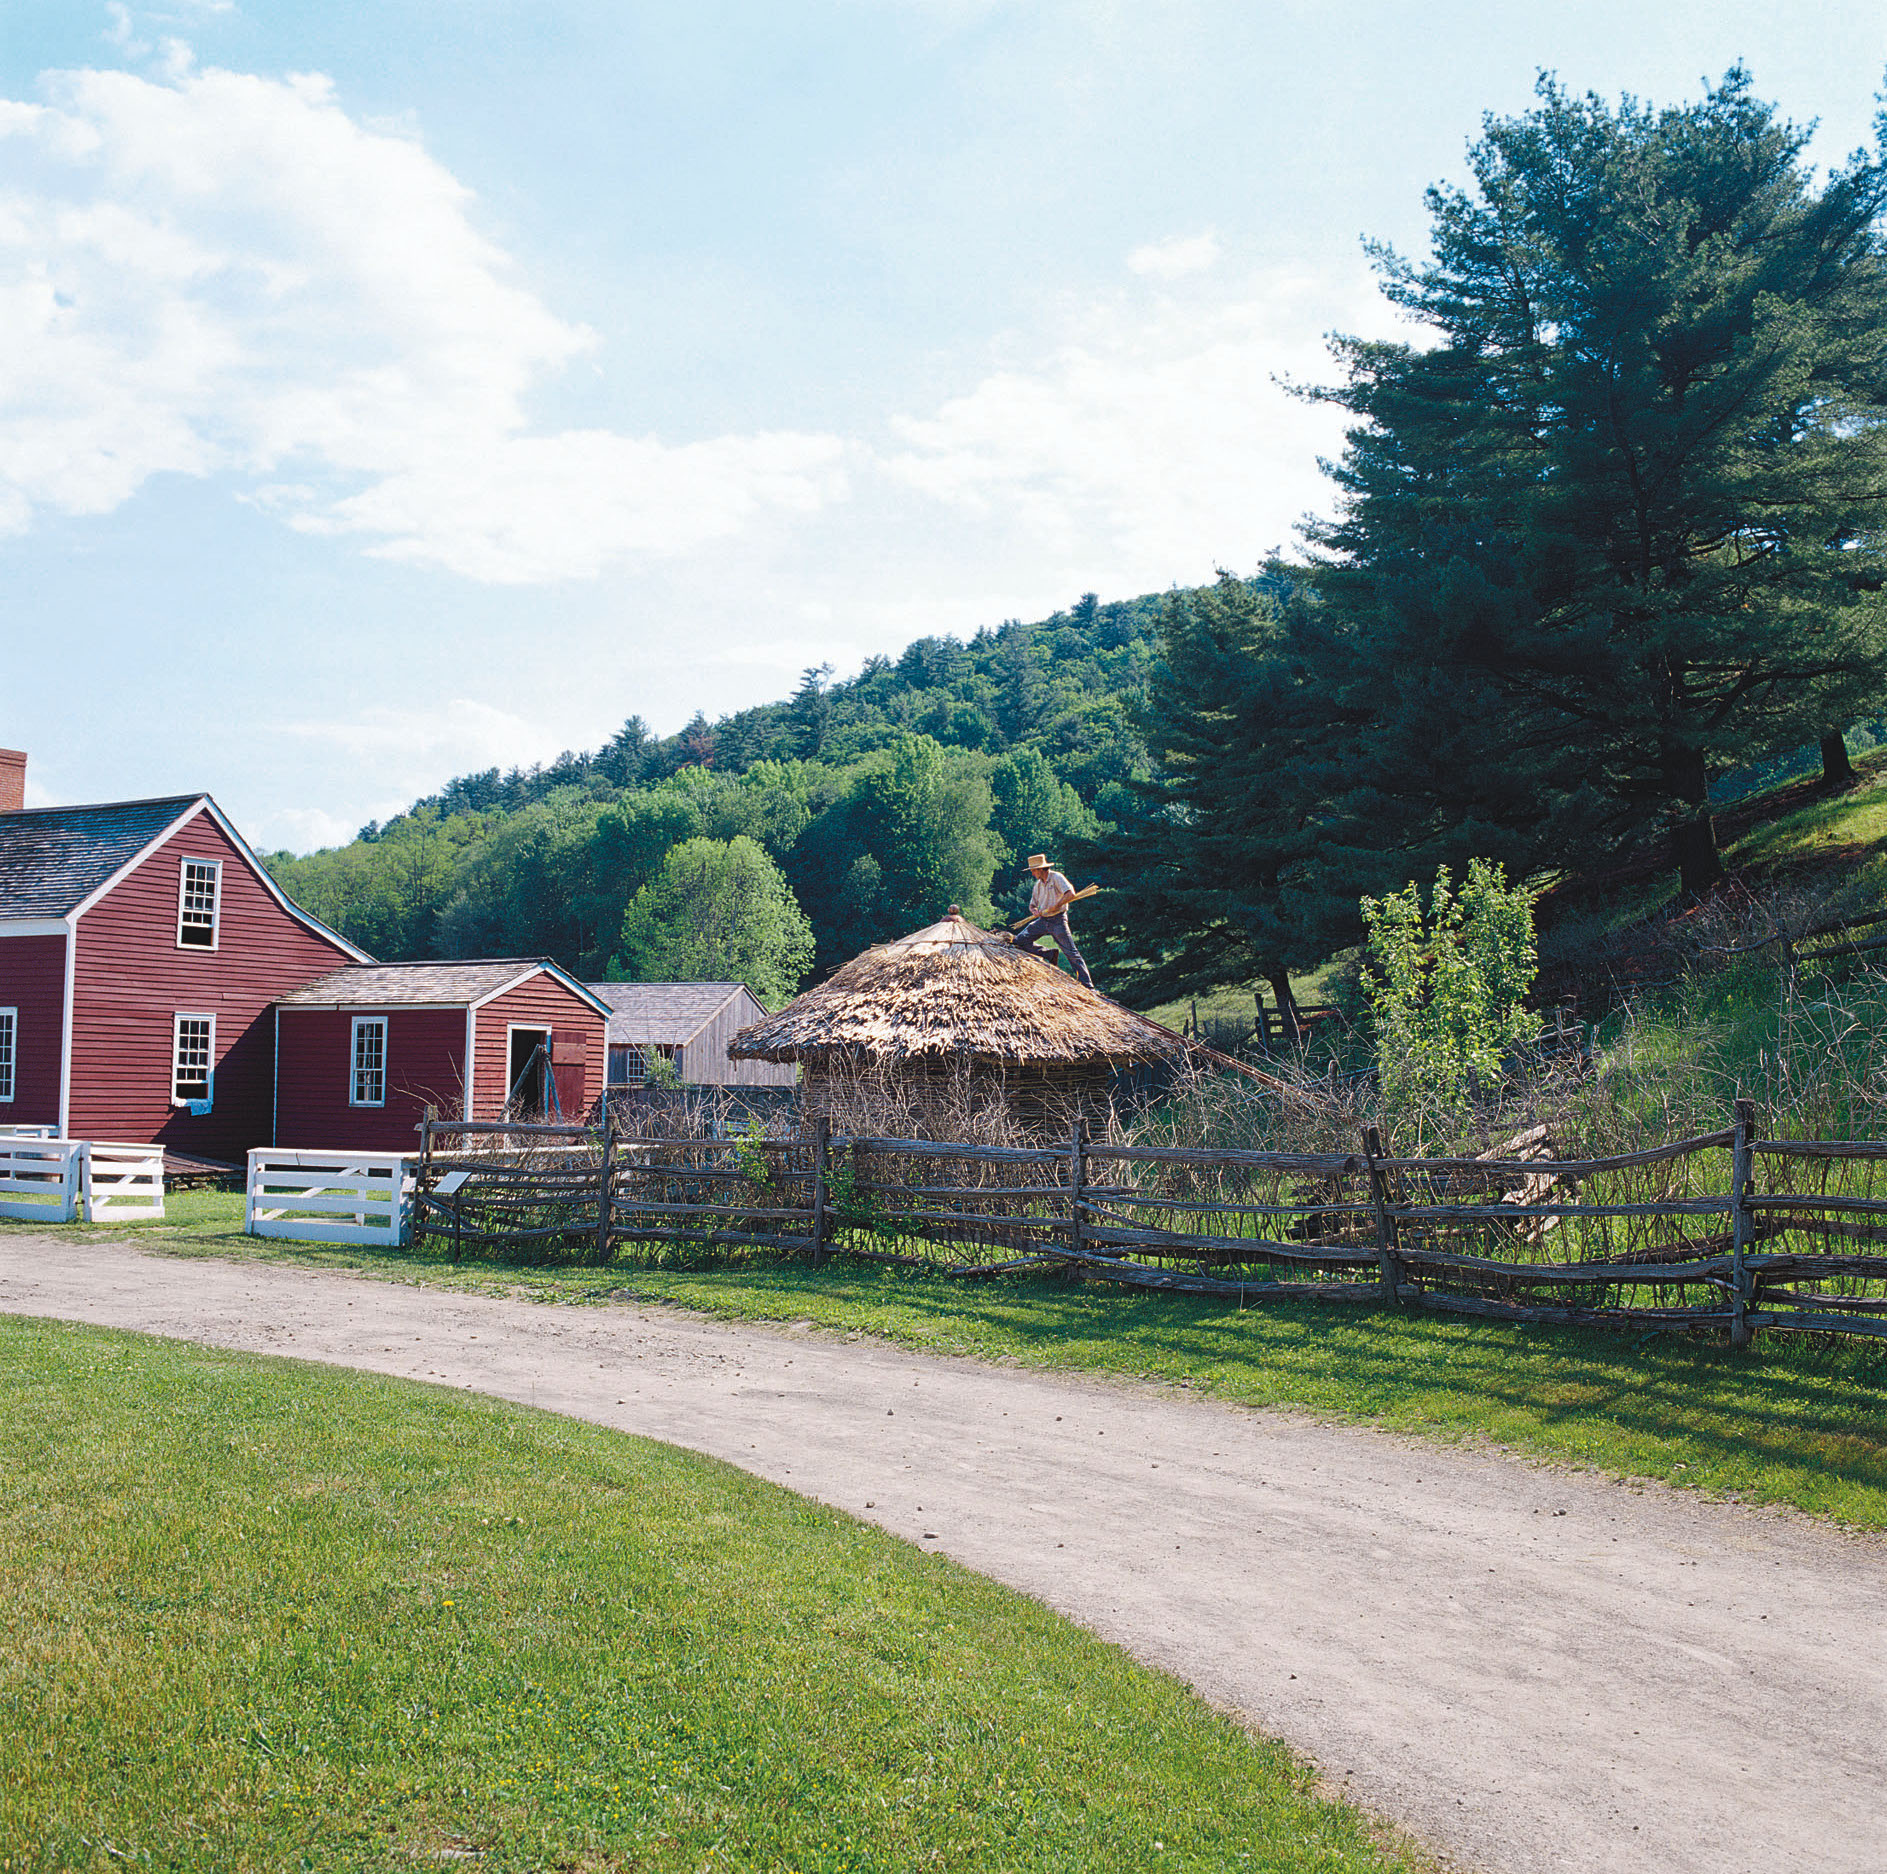 The 1790s Lippitt Farmstead  at the Farmers' Museum  has a farmhouse and  a collection of outbuildings.